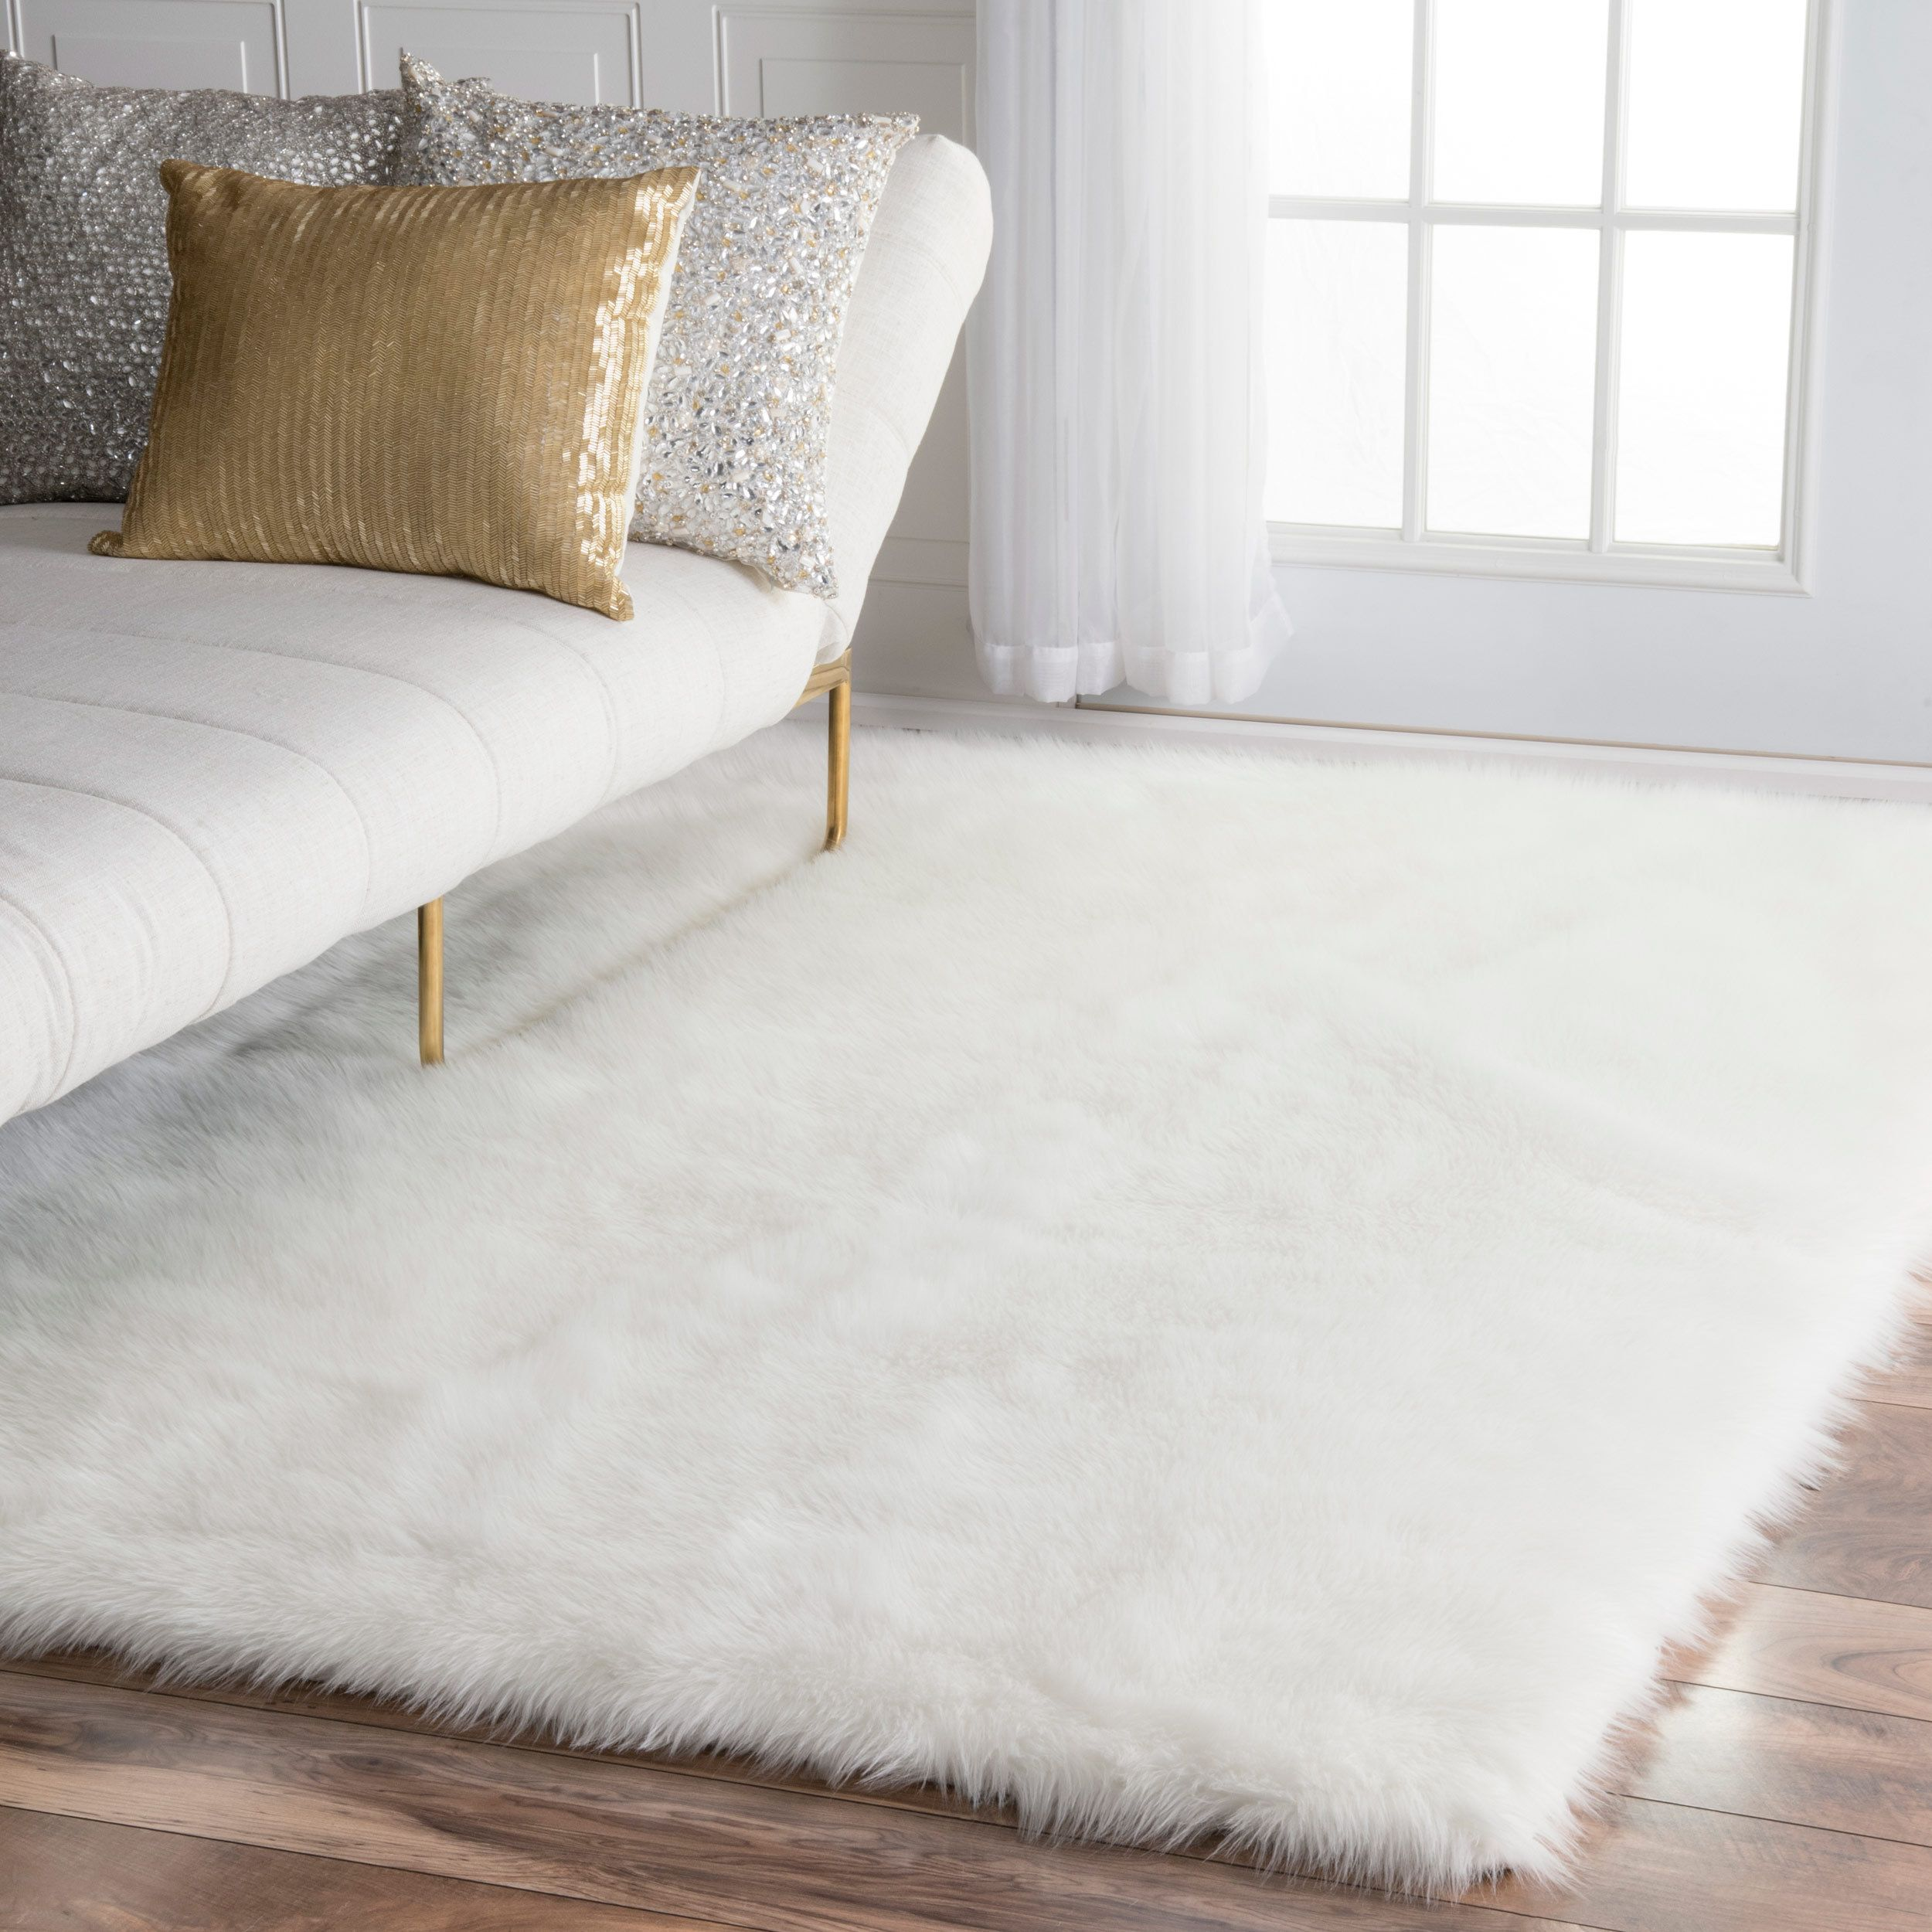 Can You Put An Area Rug Over Carpet In Bedroom